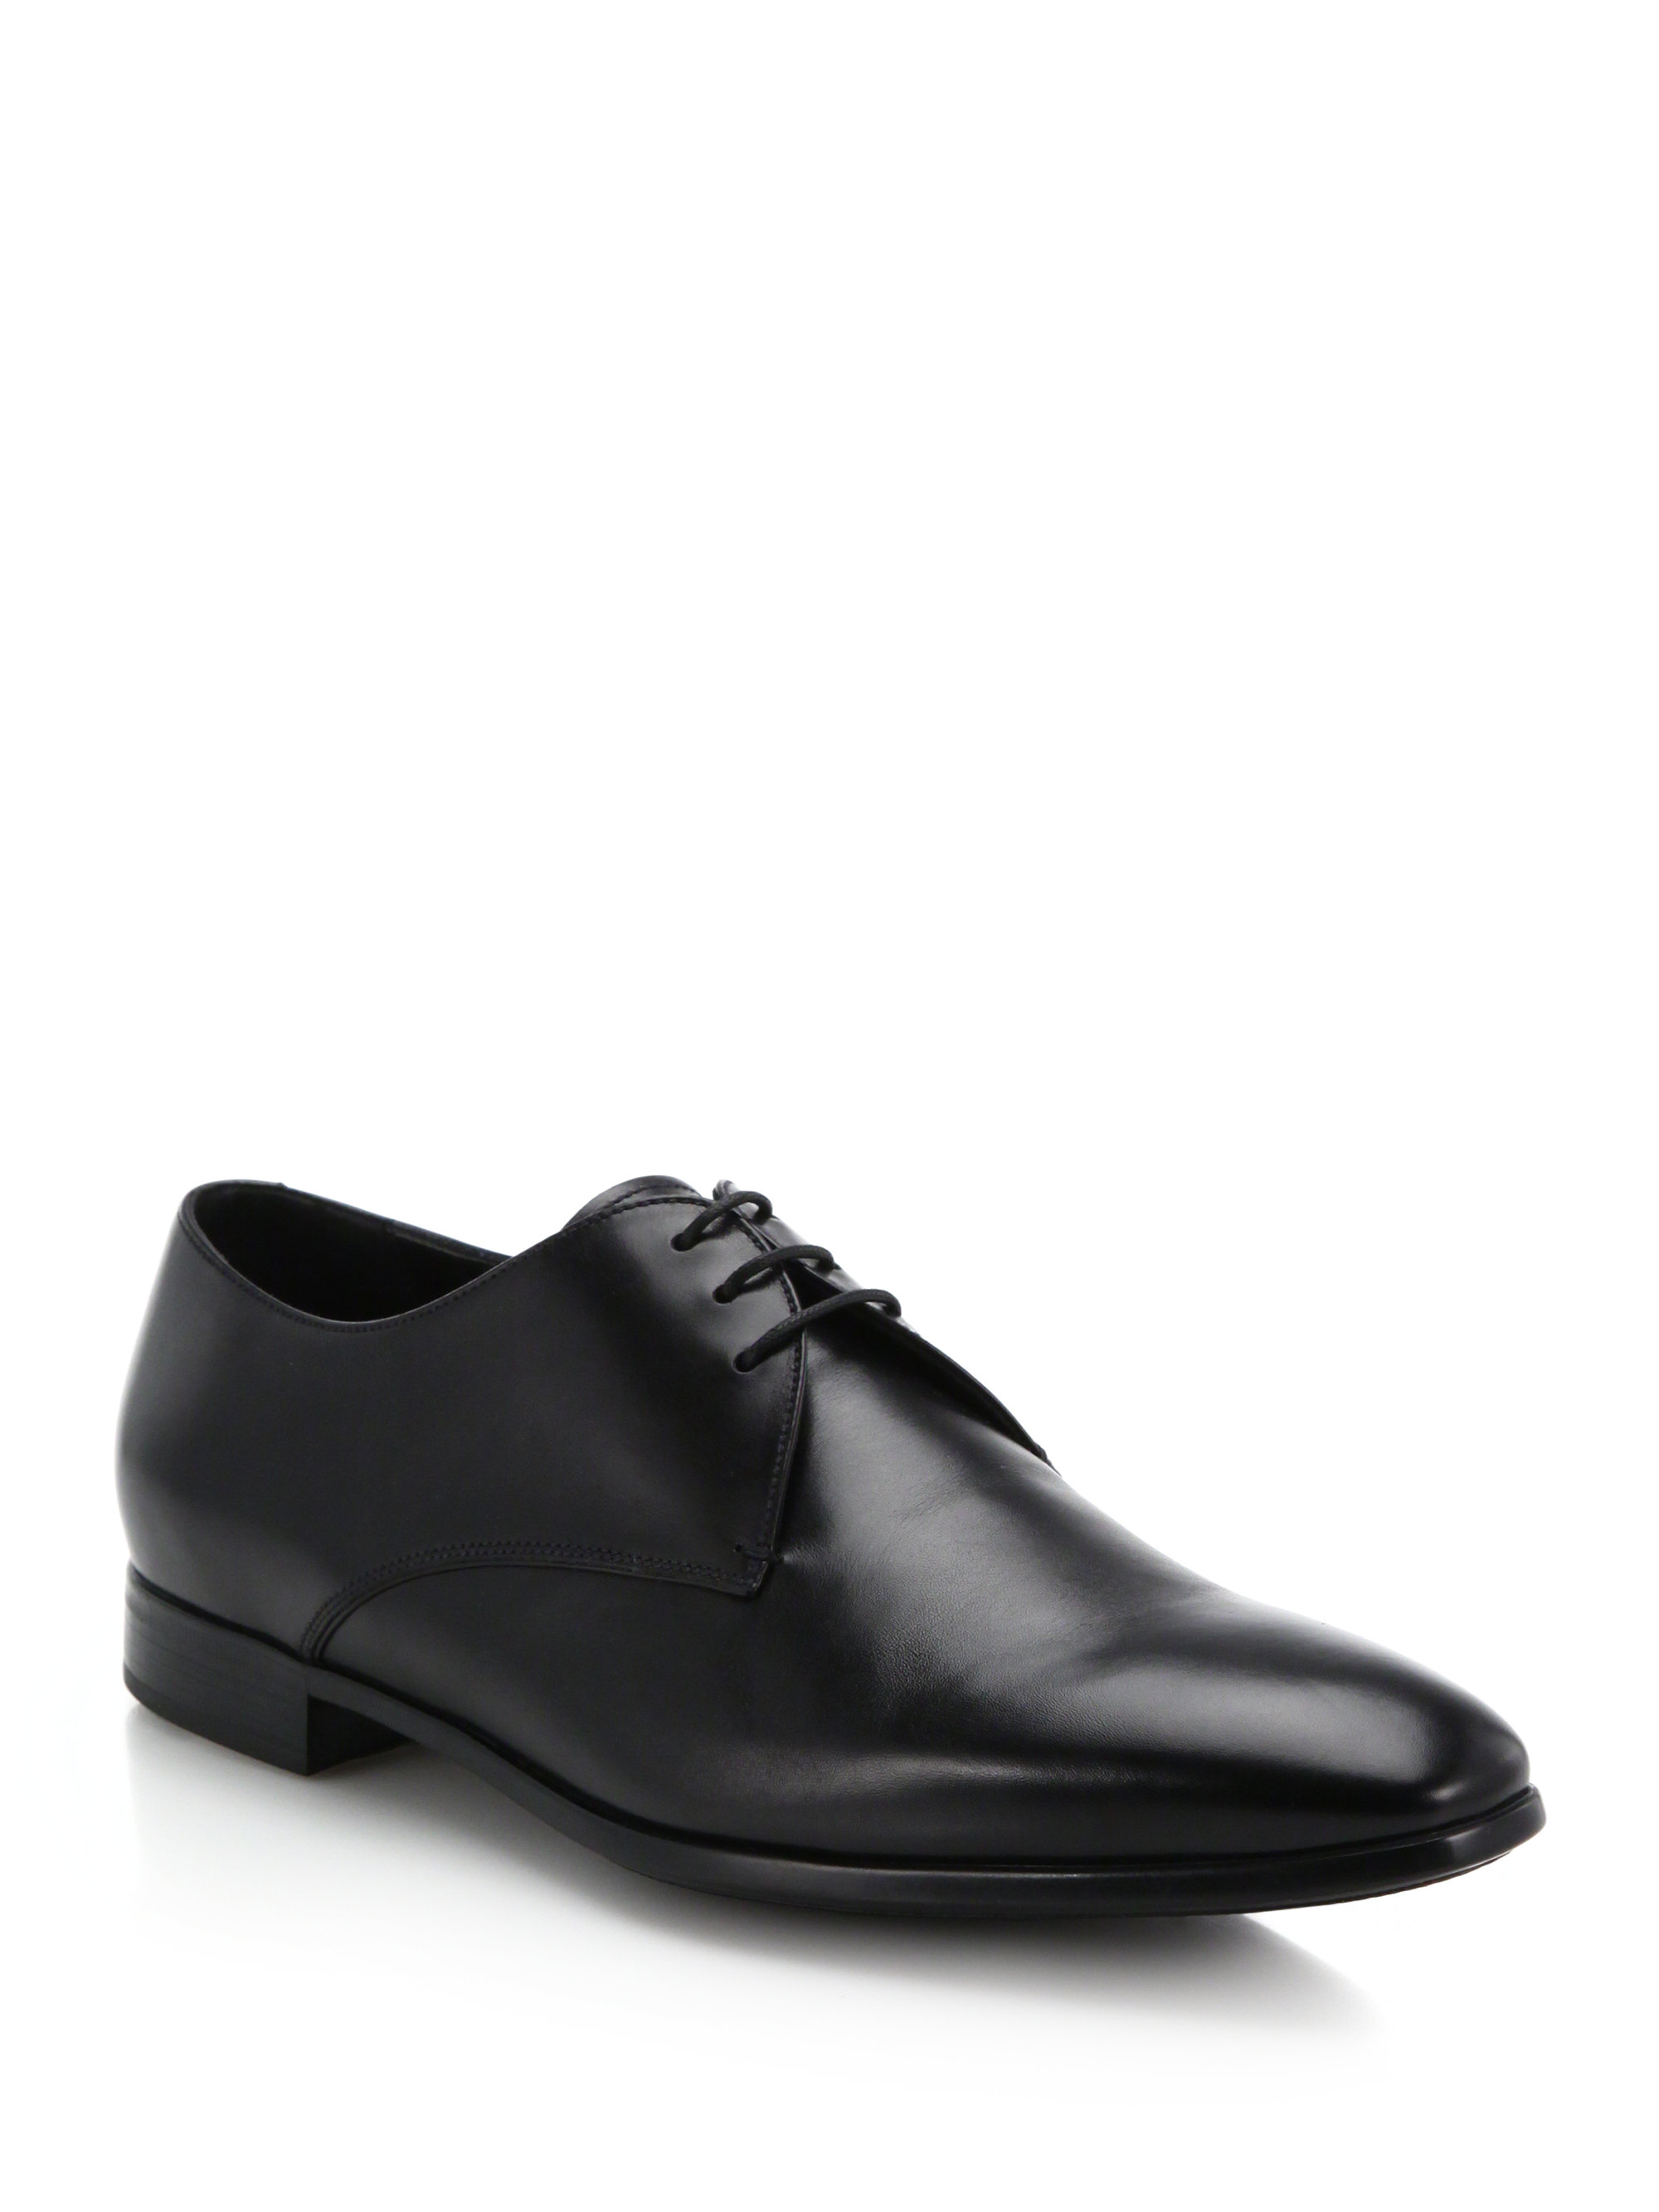 Giorgio armani Lace-Up Leather Dress Shoes in Black for ...